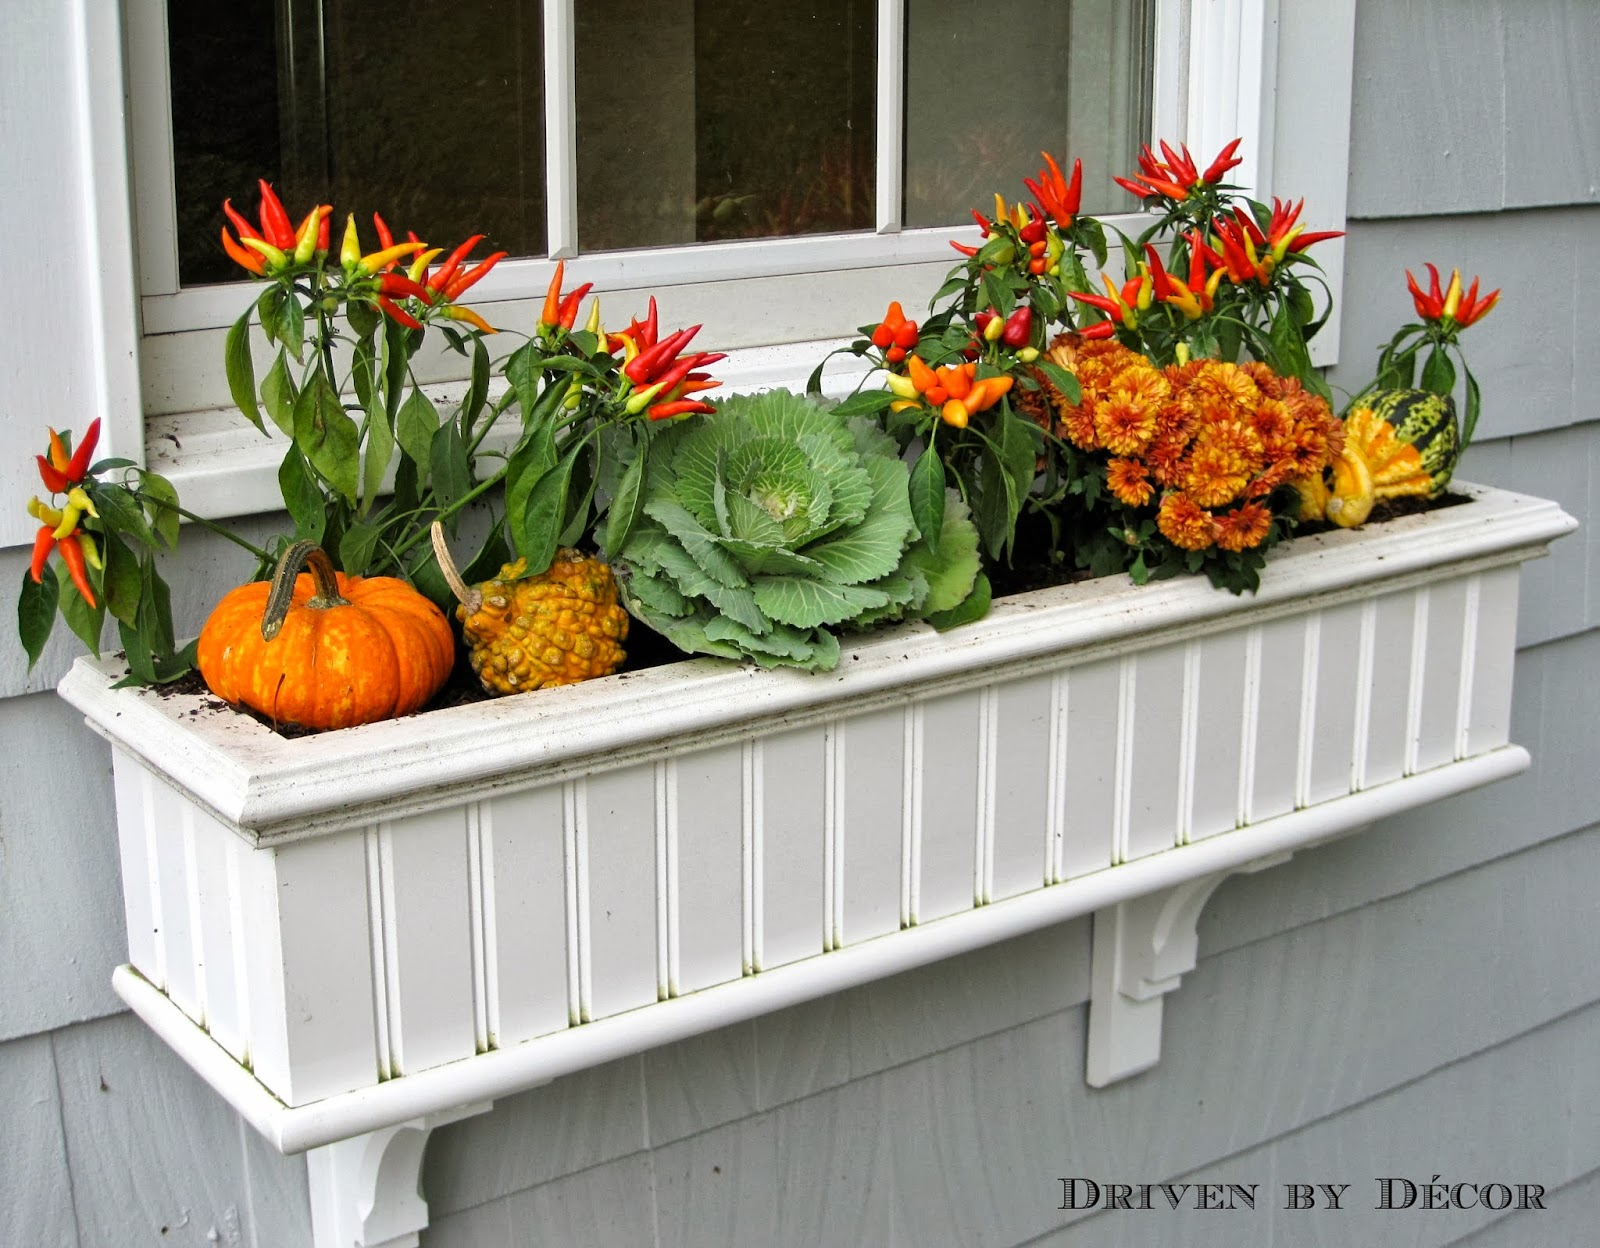 My Fall Window Boxes | Driven by Decor